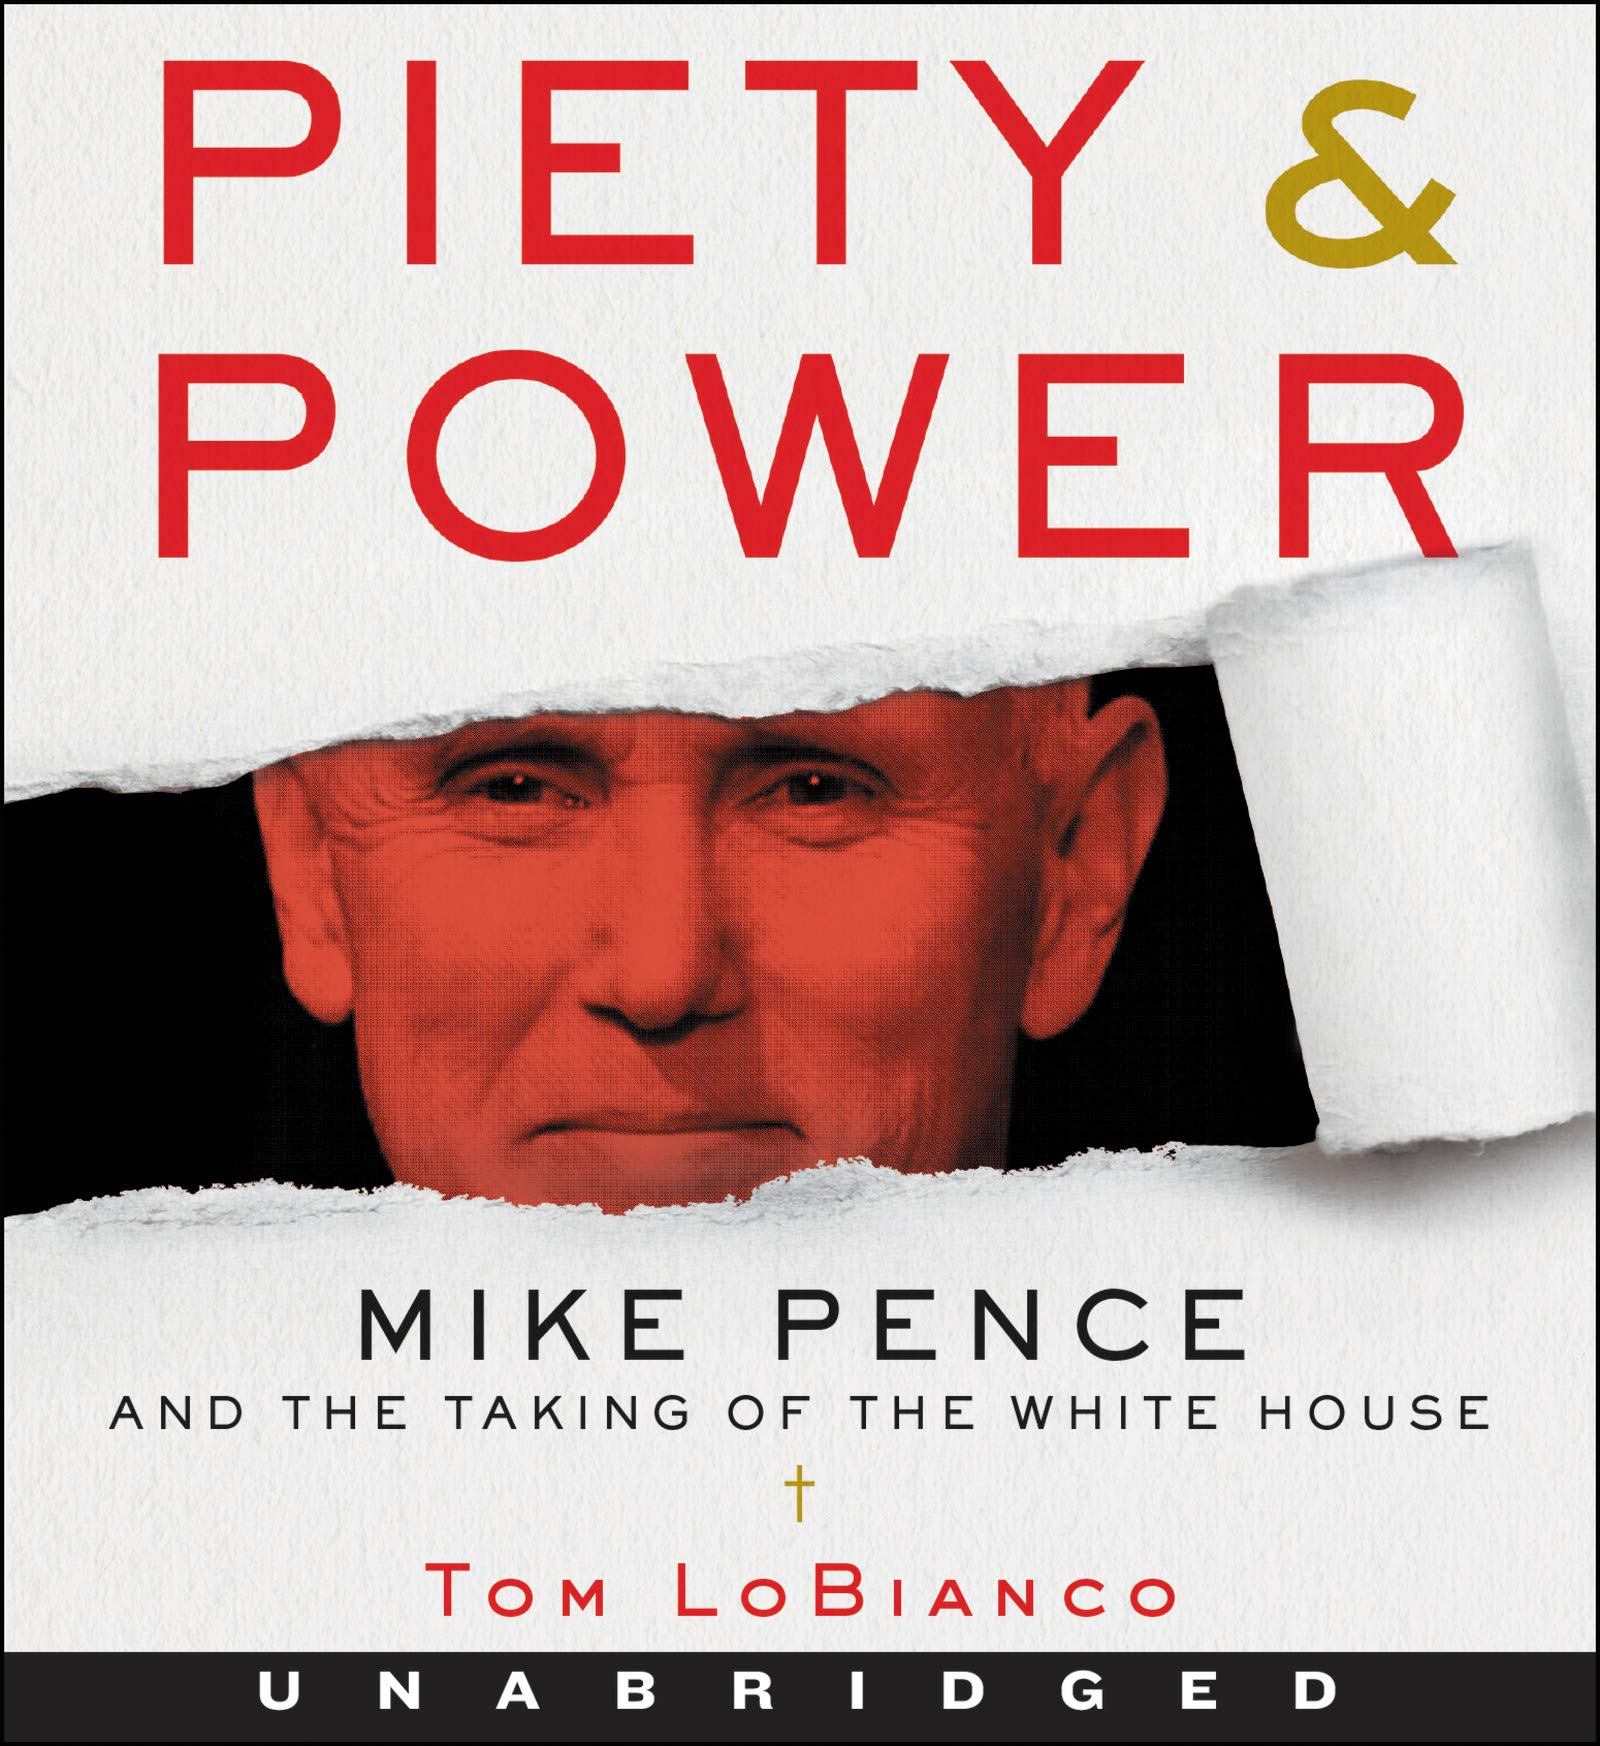 Piety Power Cd Mike Pence And The Taking Of The White House Lobianco Tom Griffith Kaleo 9780062894700 Amazon Com Books